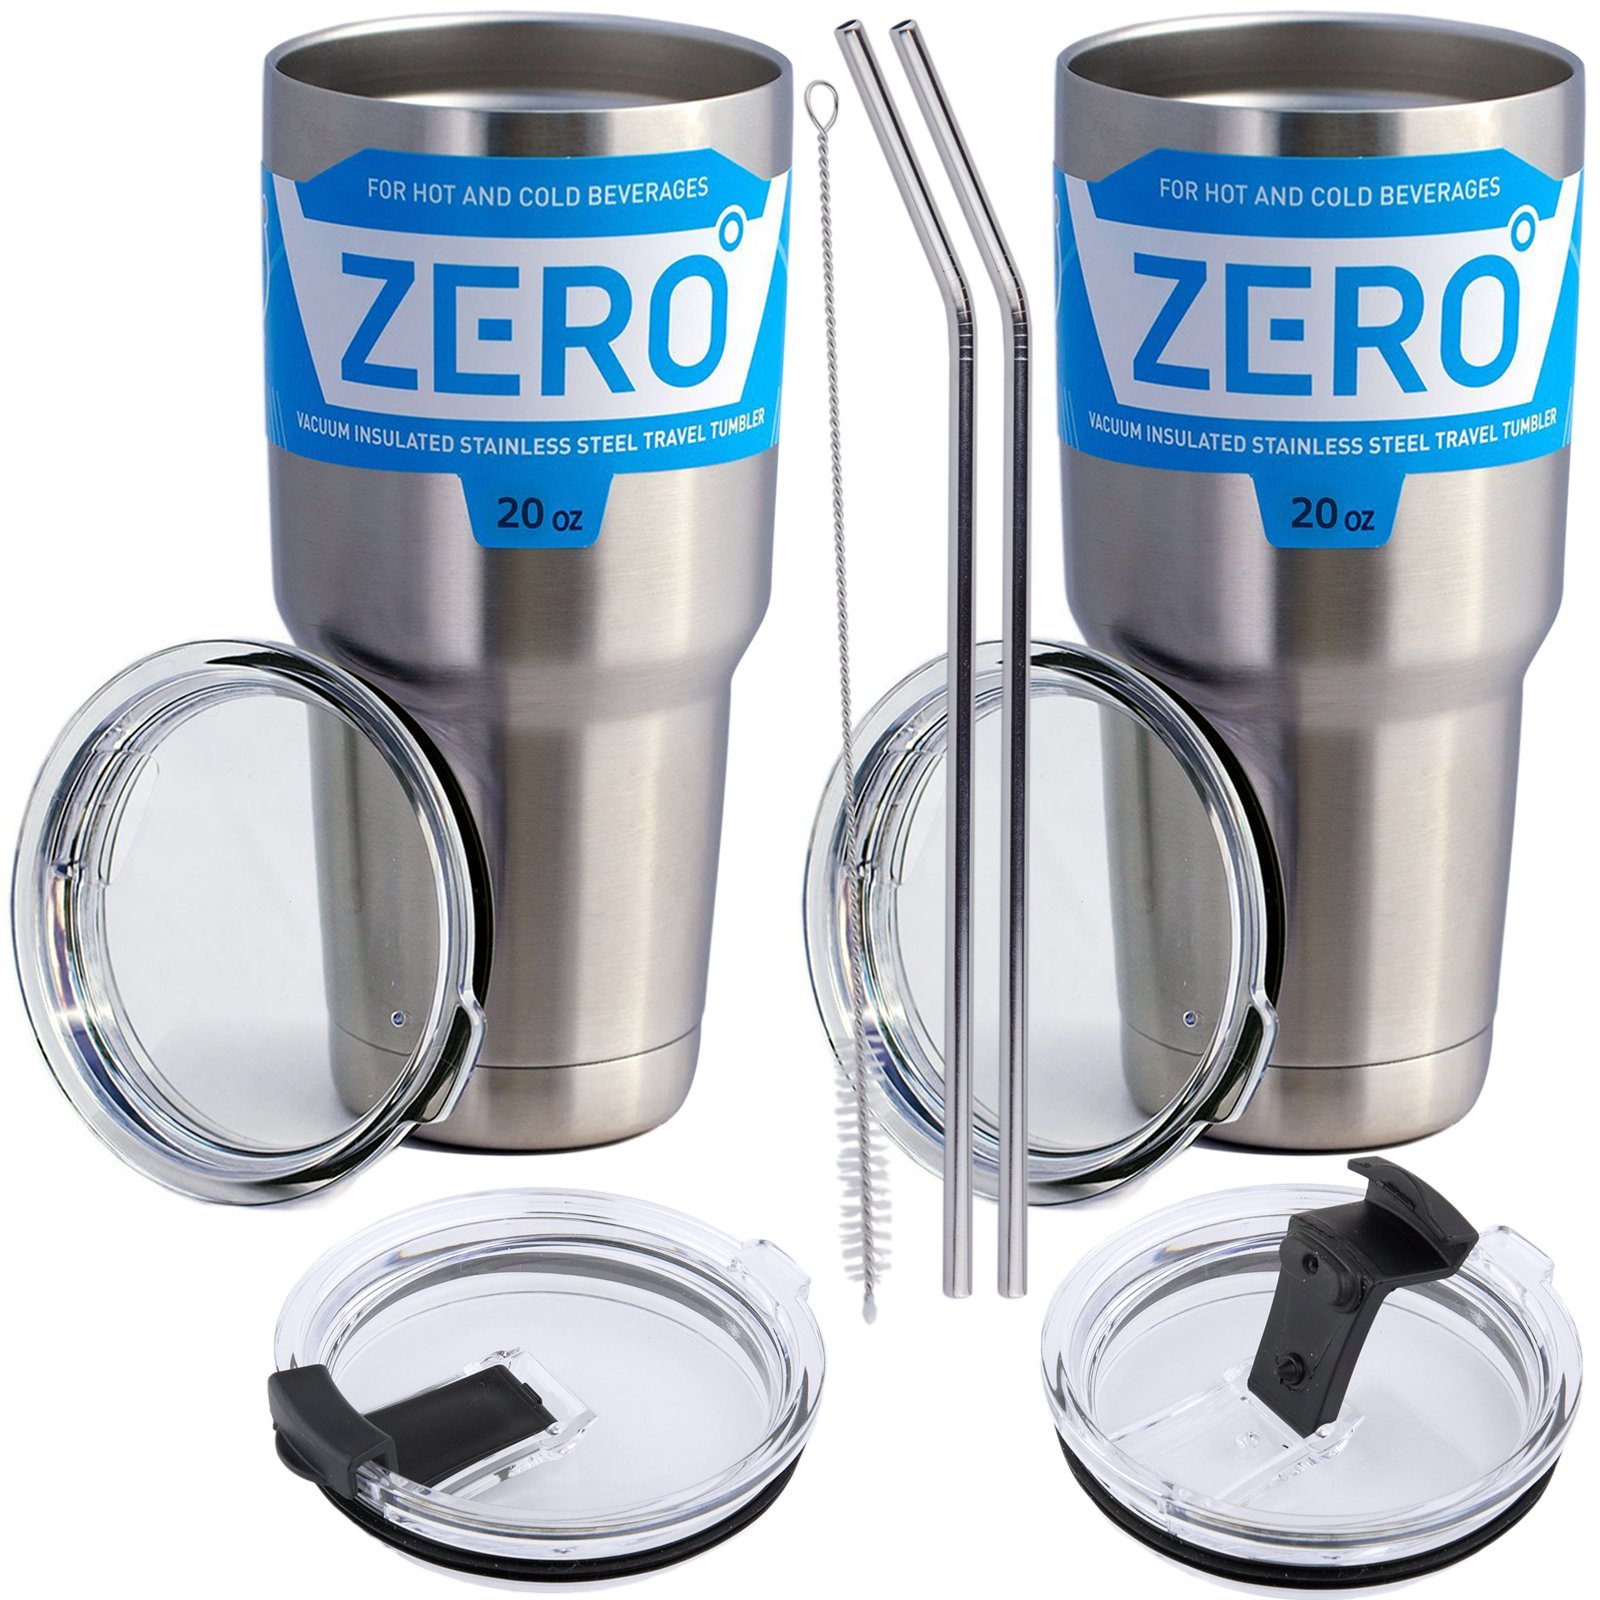 Stainless Steel Tumbler with Lid, Double Wall Vacuum Insulated Travel Mug for Hot and Cold Drink by Zero Degree (20oz Y Model 2 Pack)